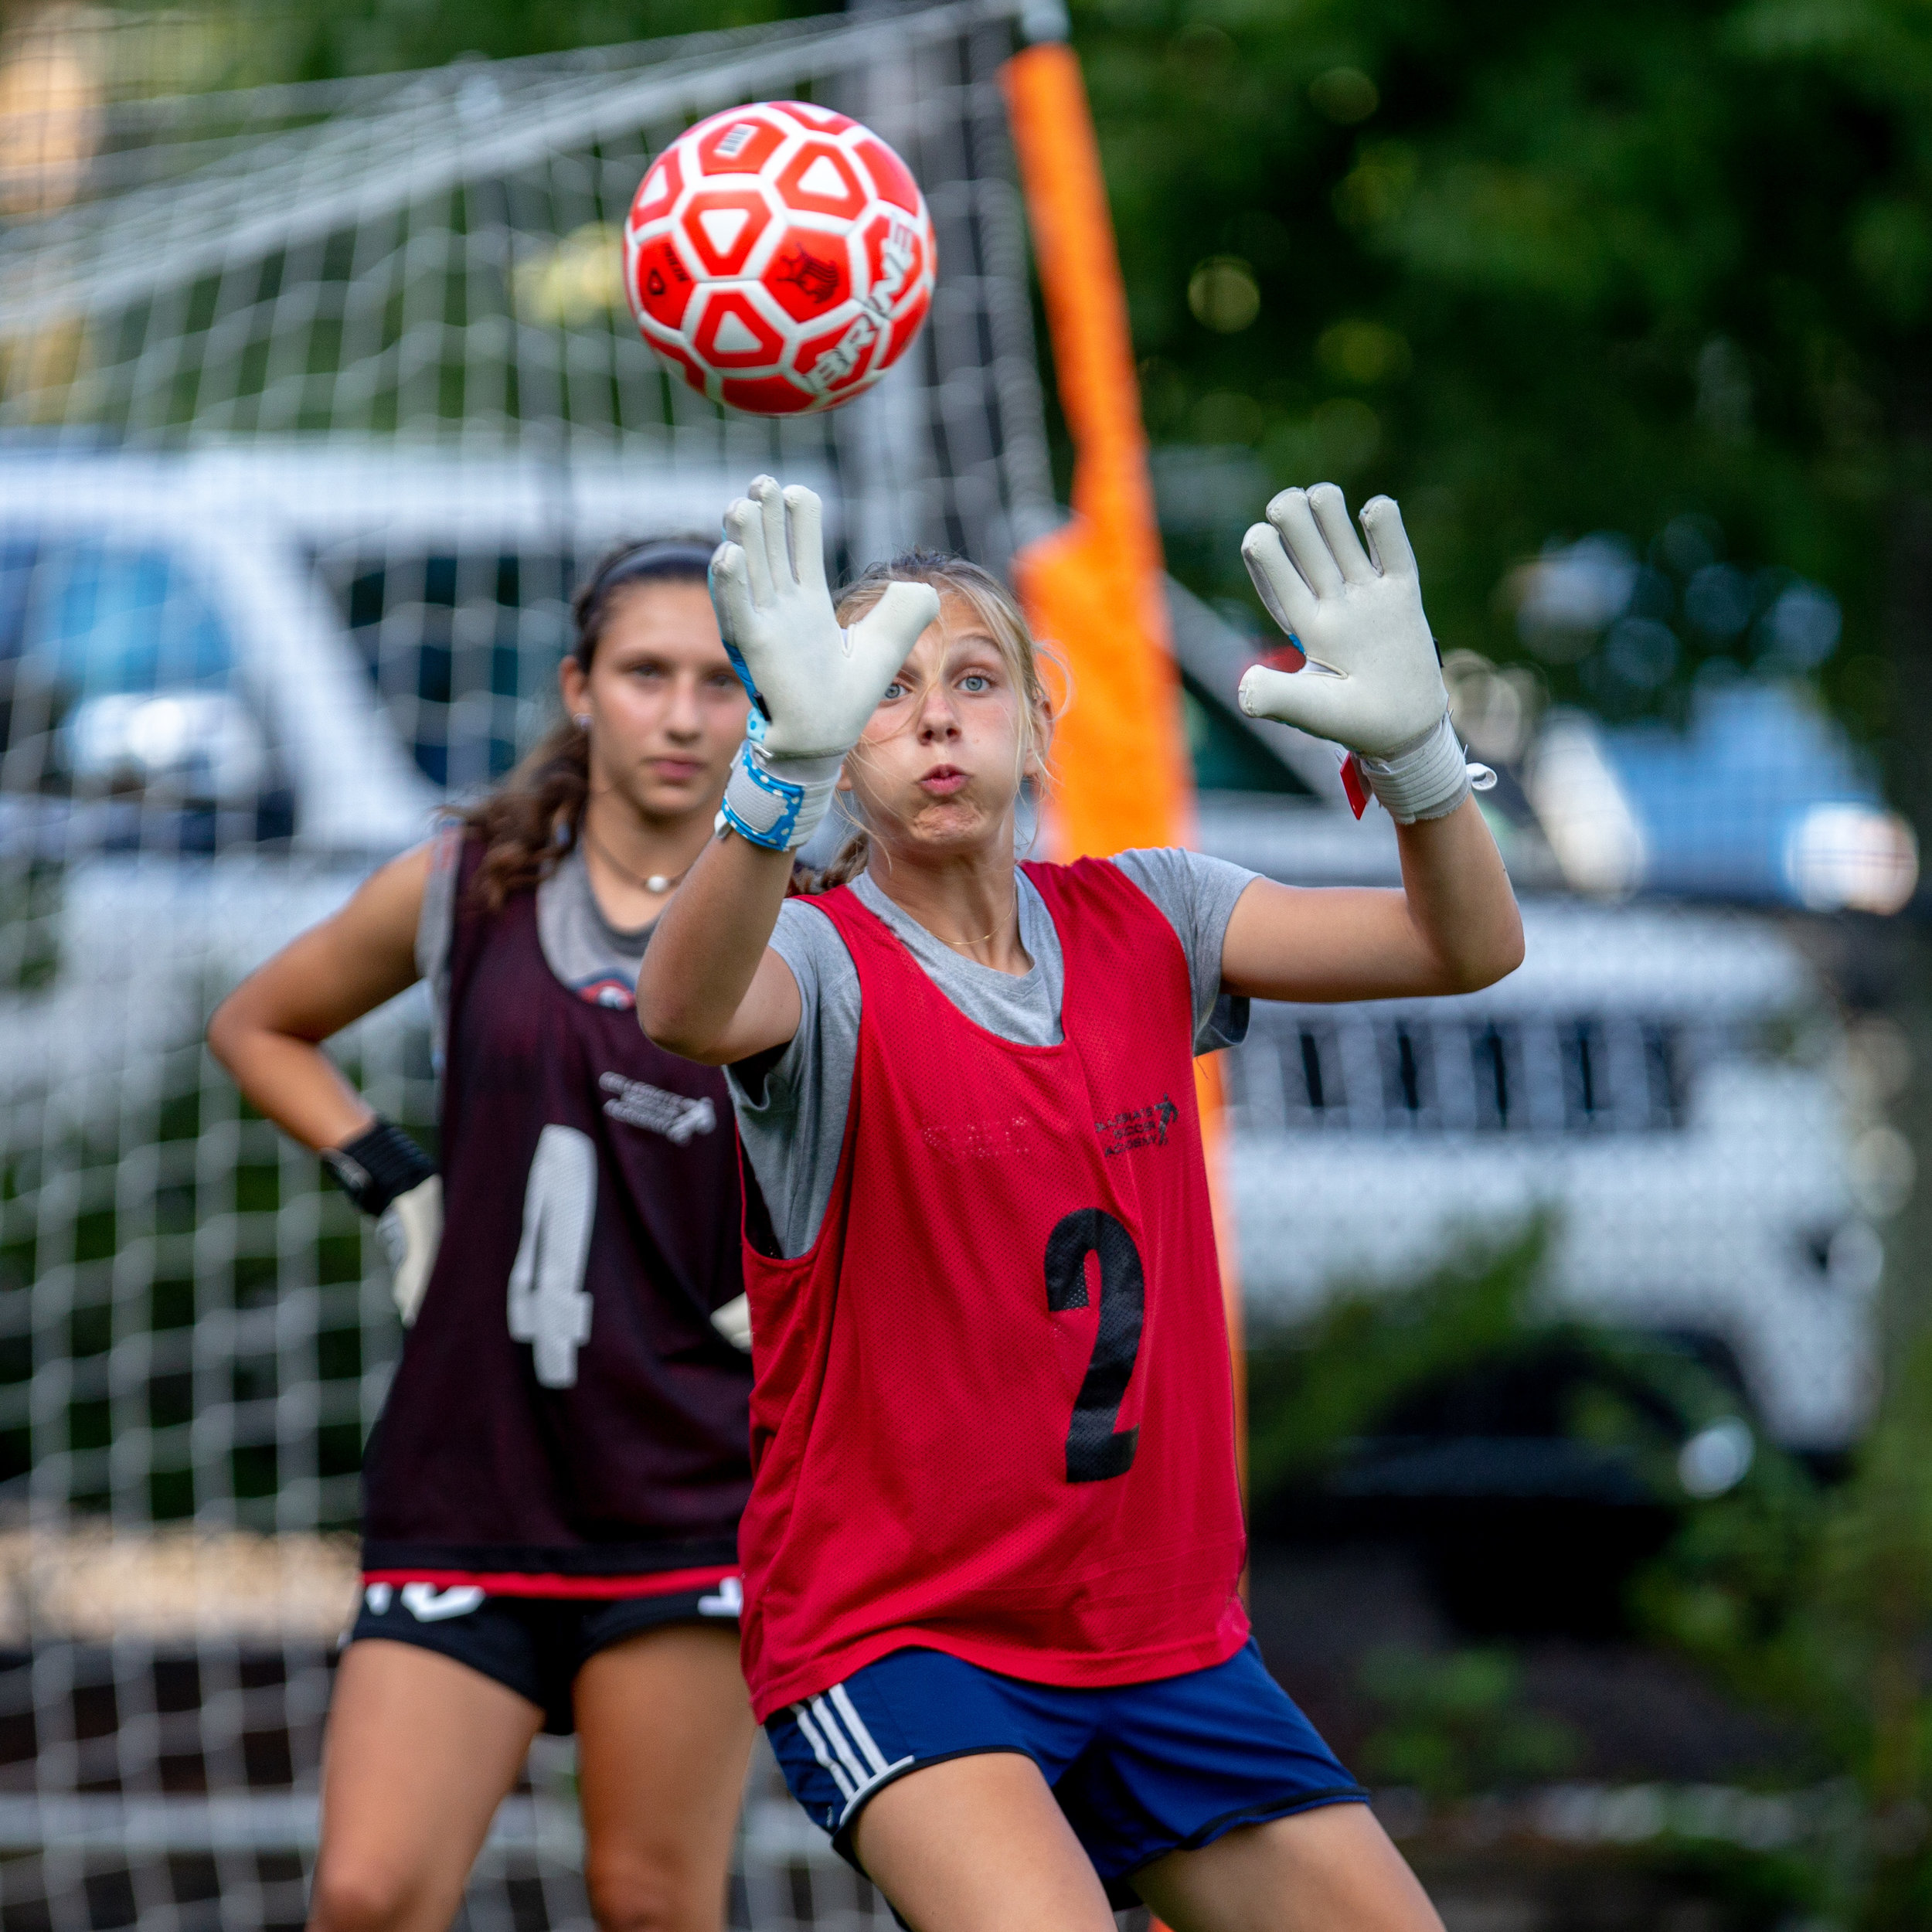 Girl takes goalie training with college coach